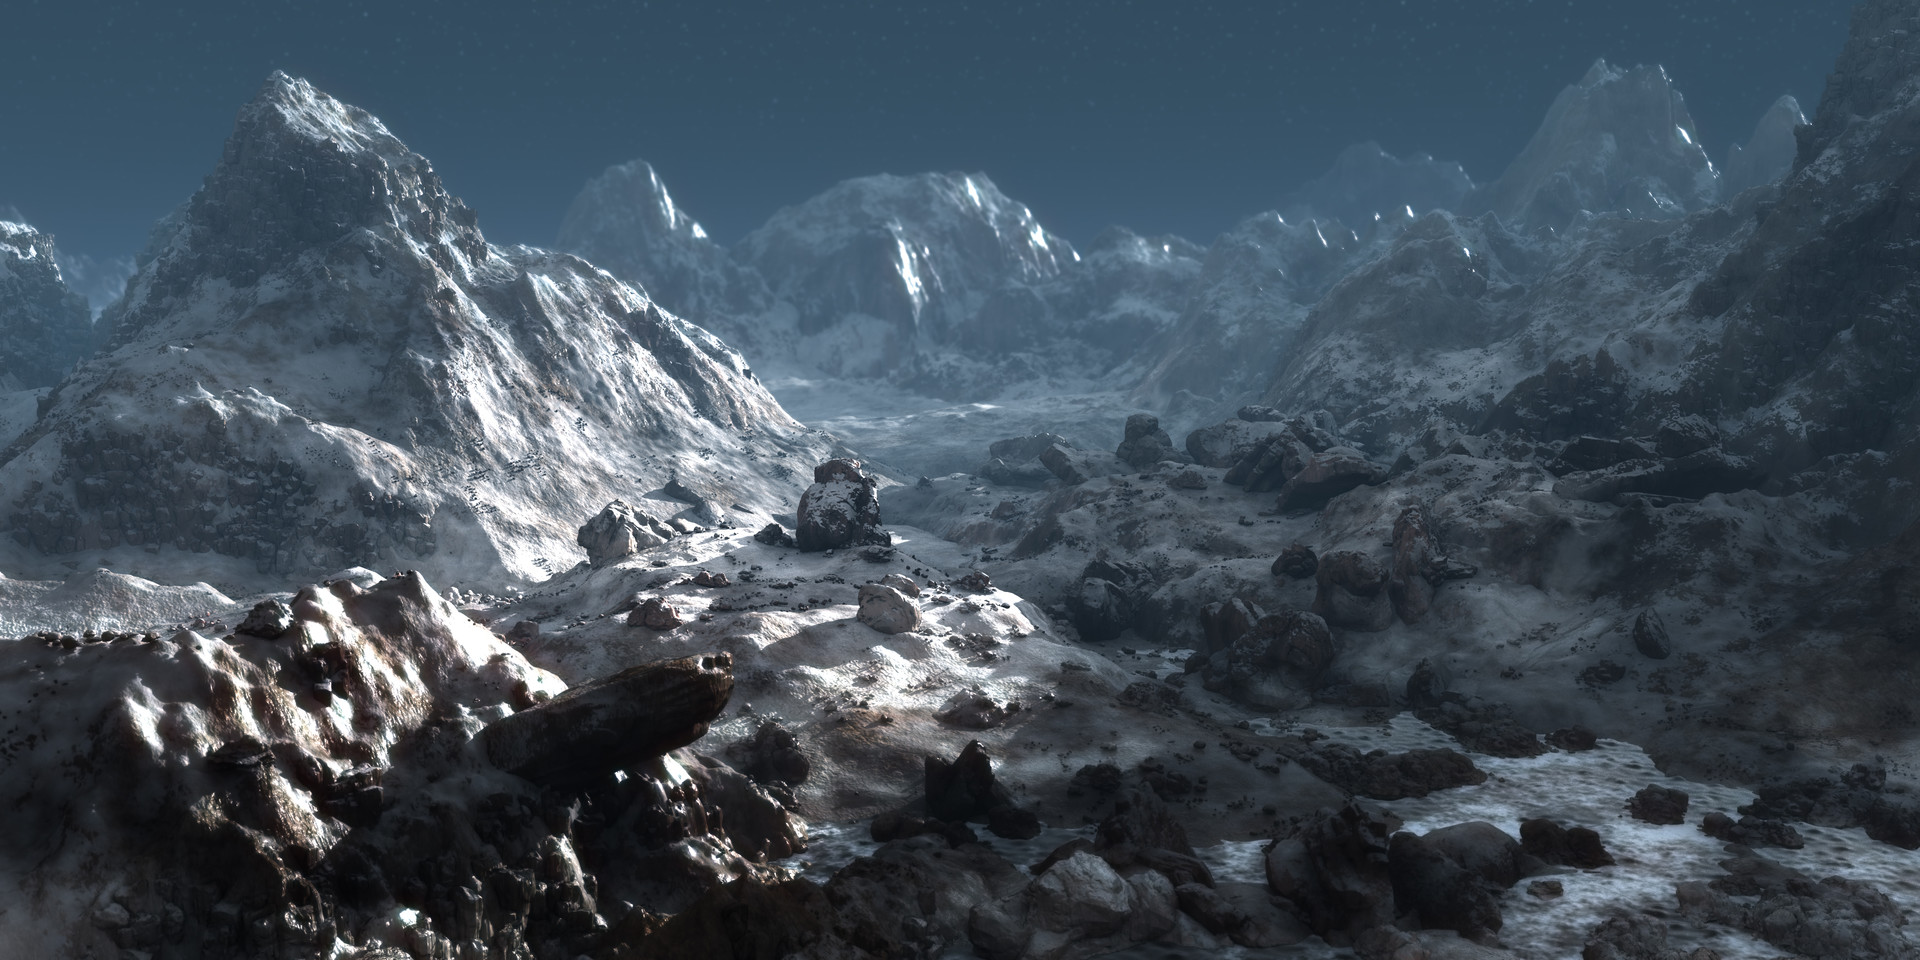 Render test of rocks and mountain assets.